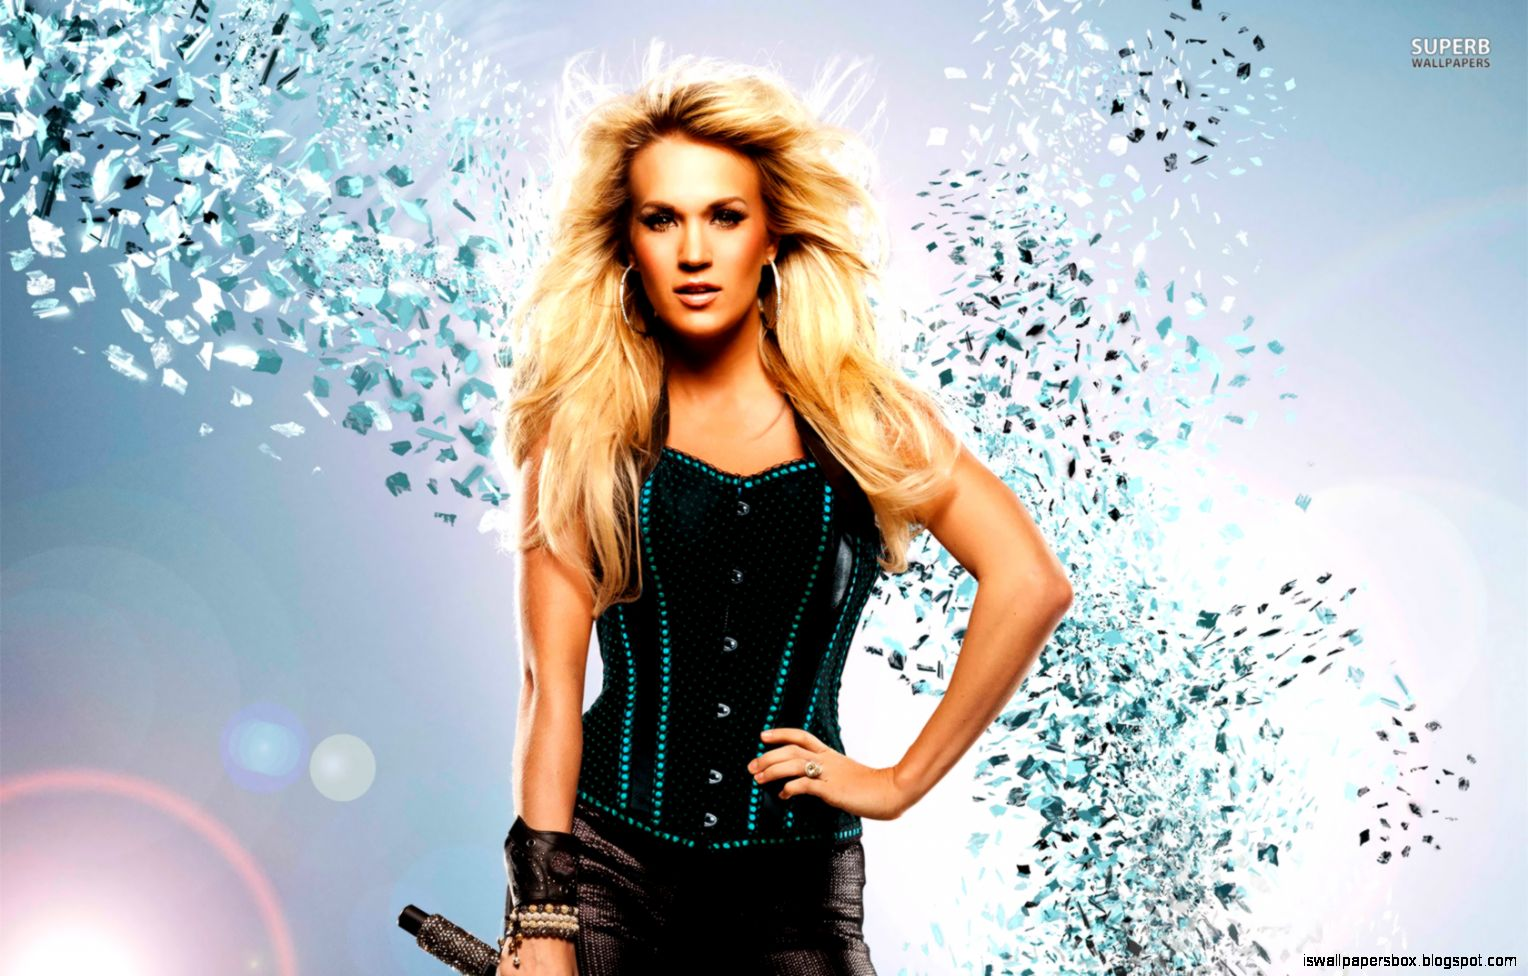 Carrie underwood wallpapers wallpapers box - Carrie underwood hd wallpaper ...